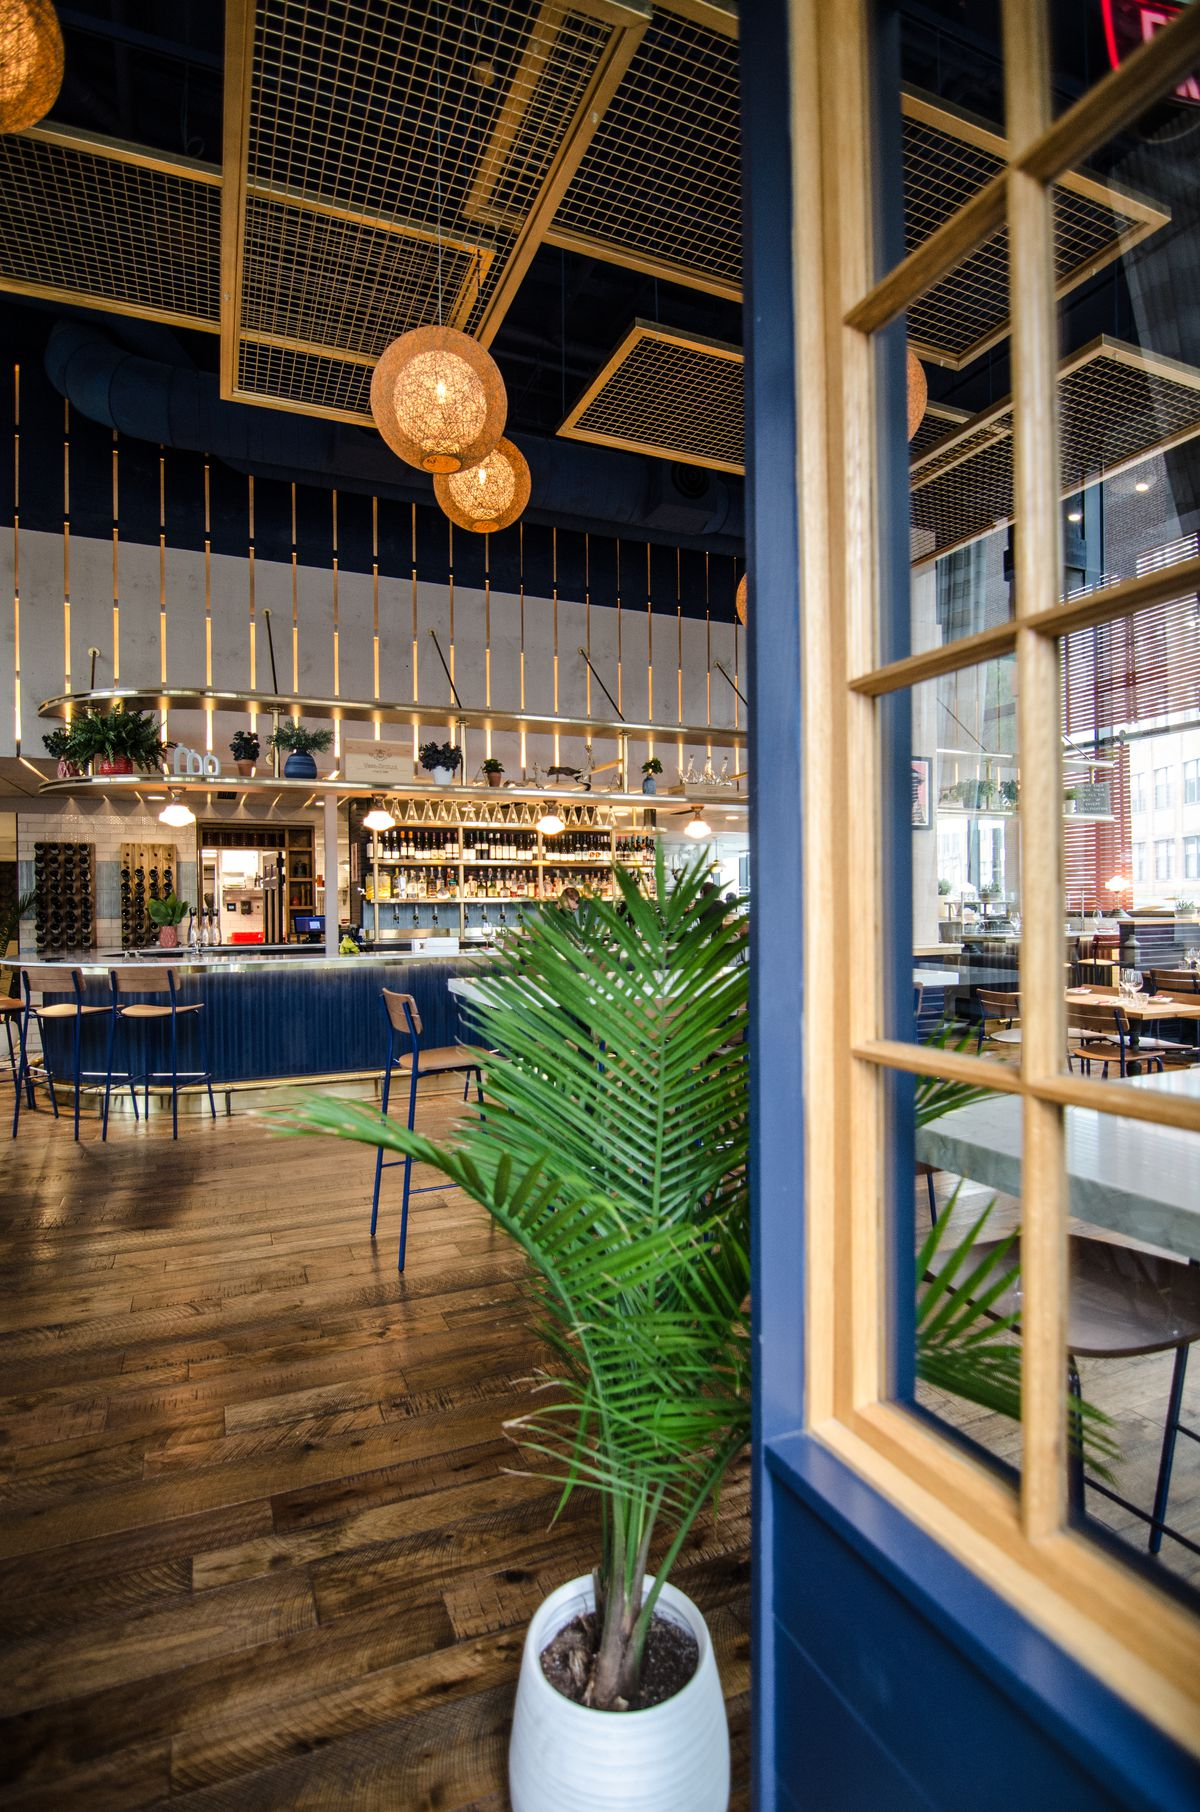 A blue door with pale yellow accents is propped open by a large potted plant to reveal a high-ceilinged restaurant with wooden floor, wooden tables spaced far apart, and blue and yellow accents.